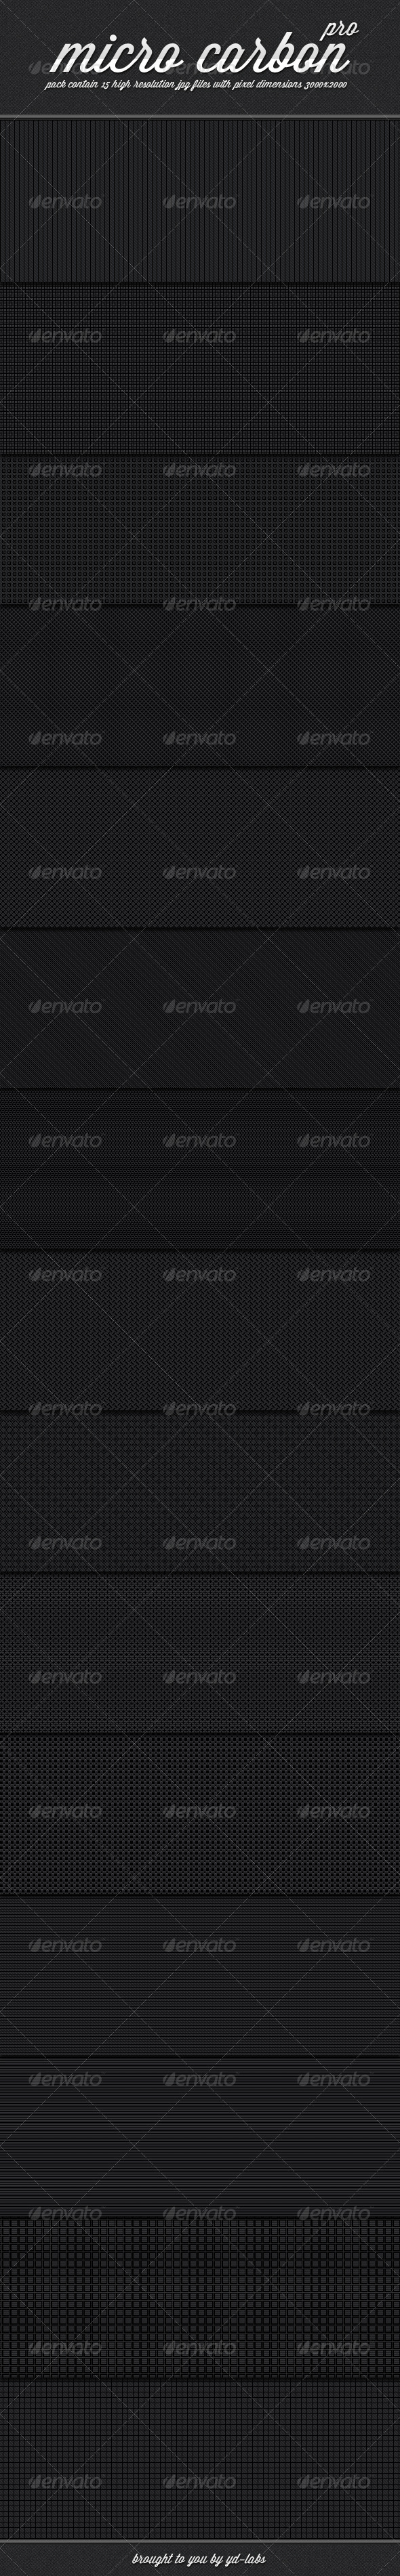 Micro Carbon Patterns Pro - Patterns Backgrounds